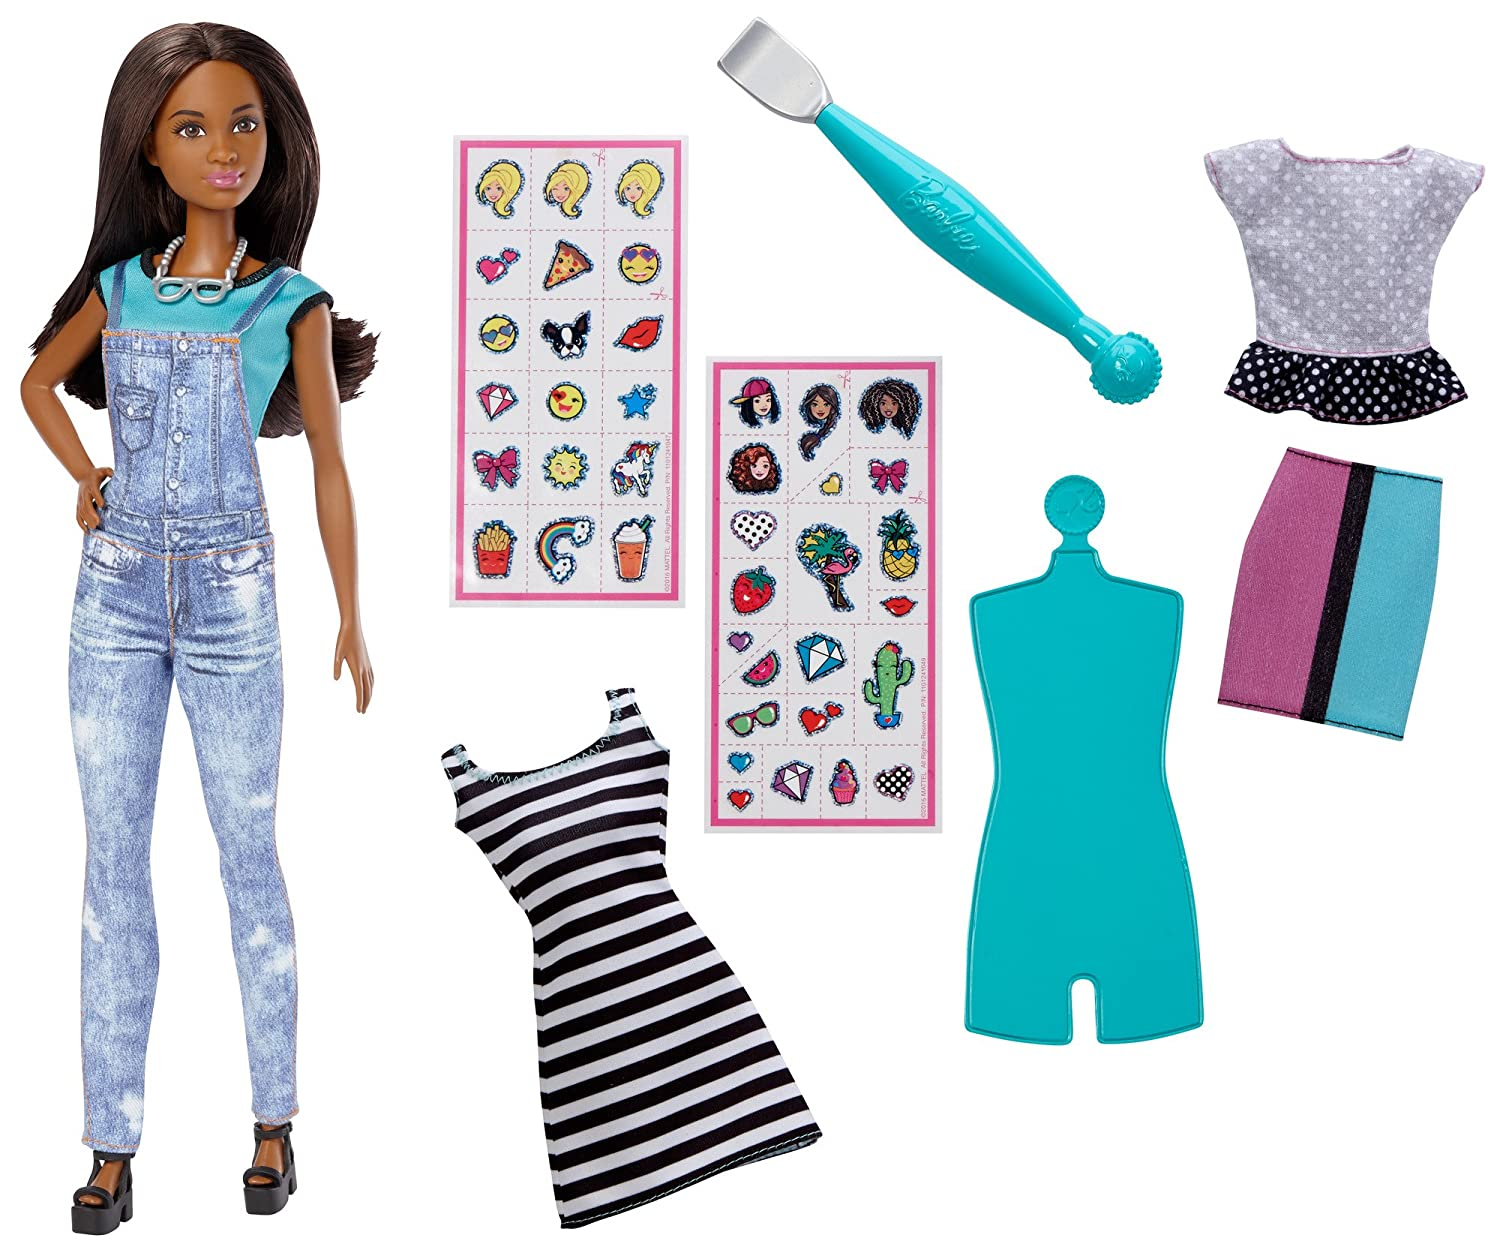 Clothes for Barbie do-it-yourself: we create fashion at home